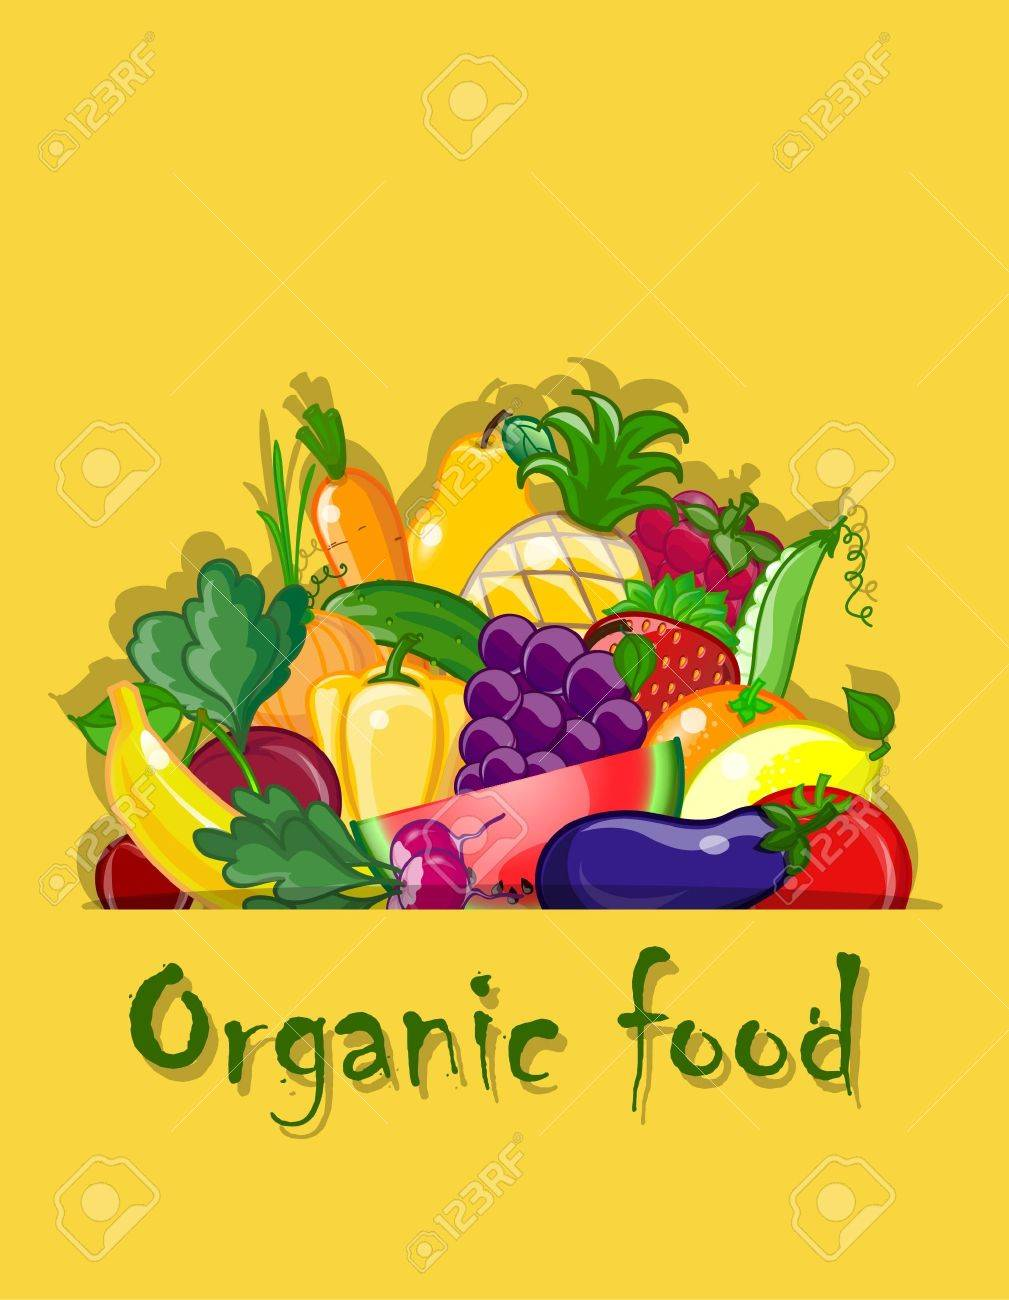 Vegetables and fruits, vector background Stock Vector - 17989114